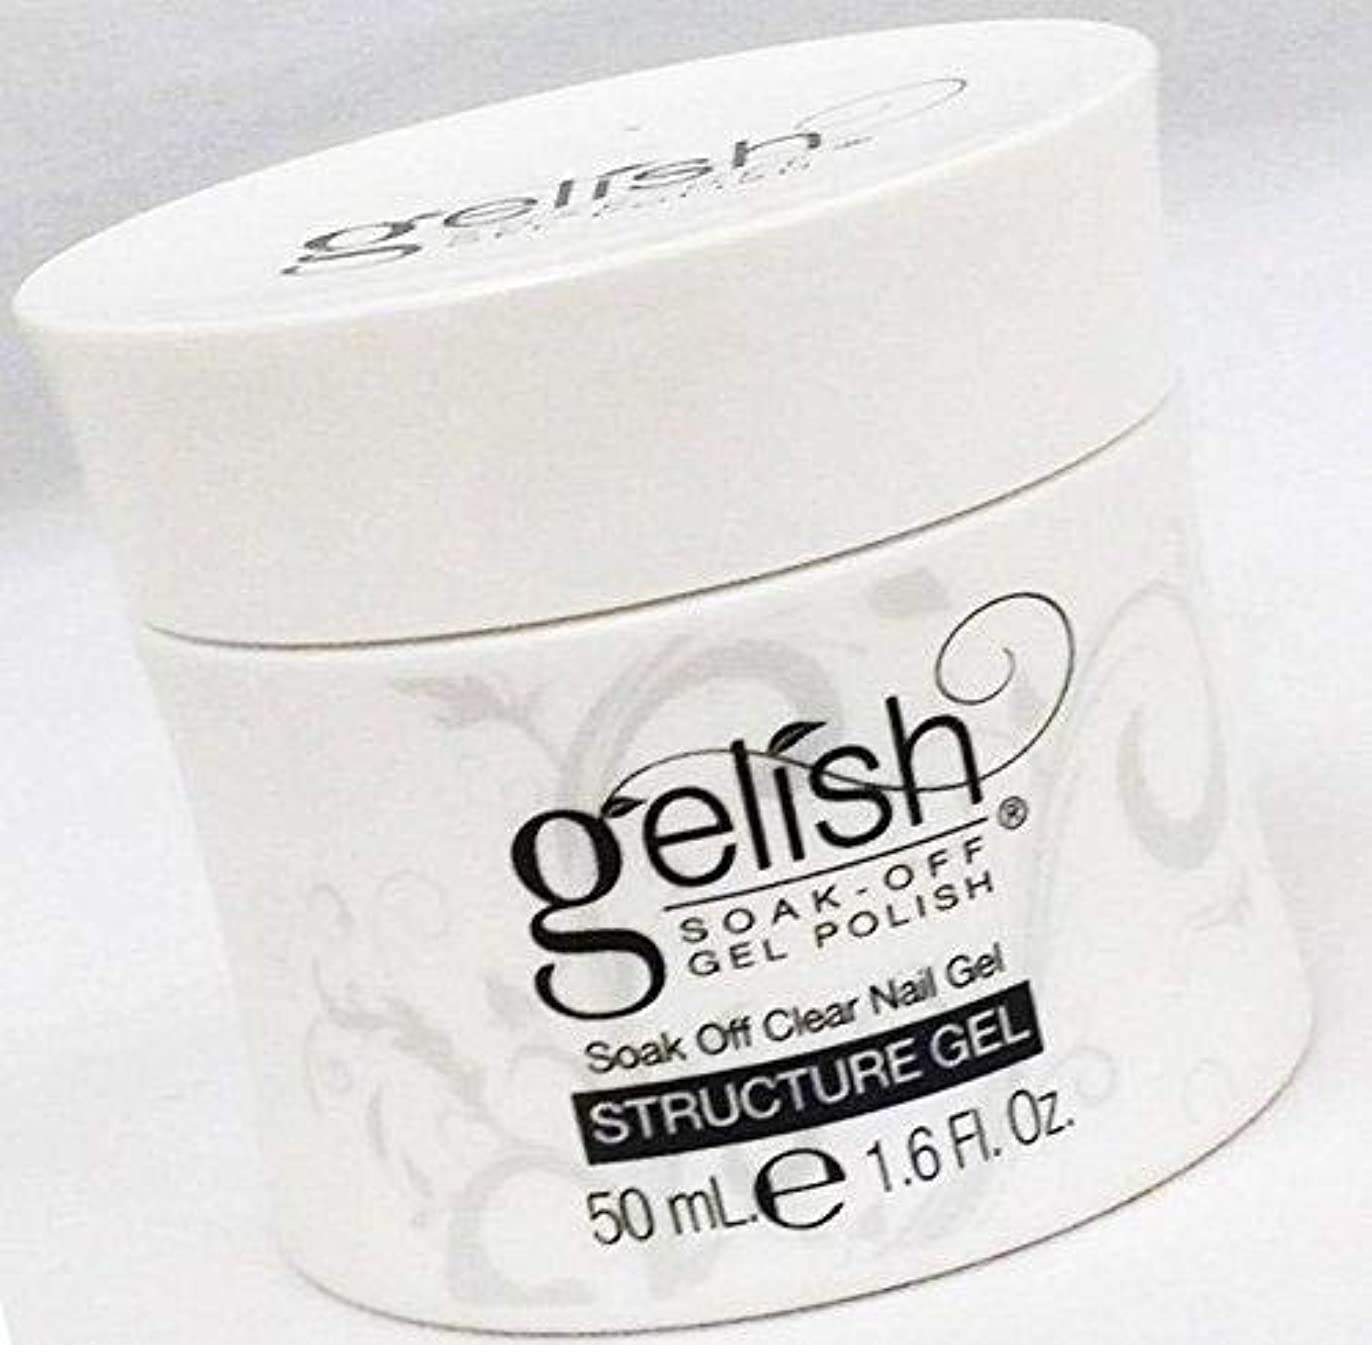 間接的発音湿地Harmony Gelish Essentials - Structure Gel Building Gel - 50ml / 1.6oz